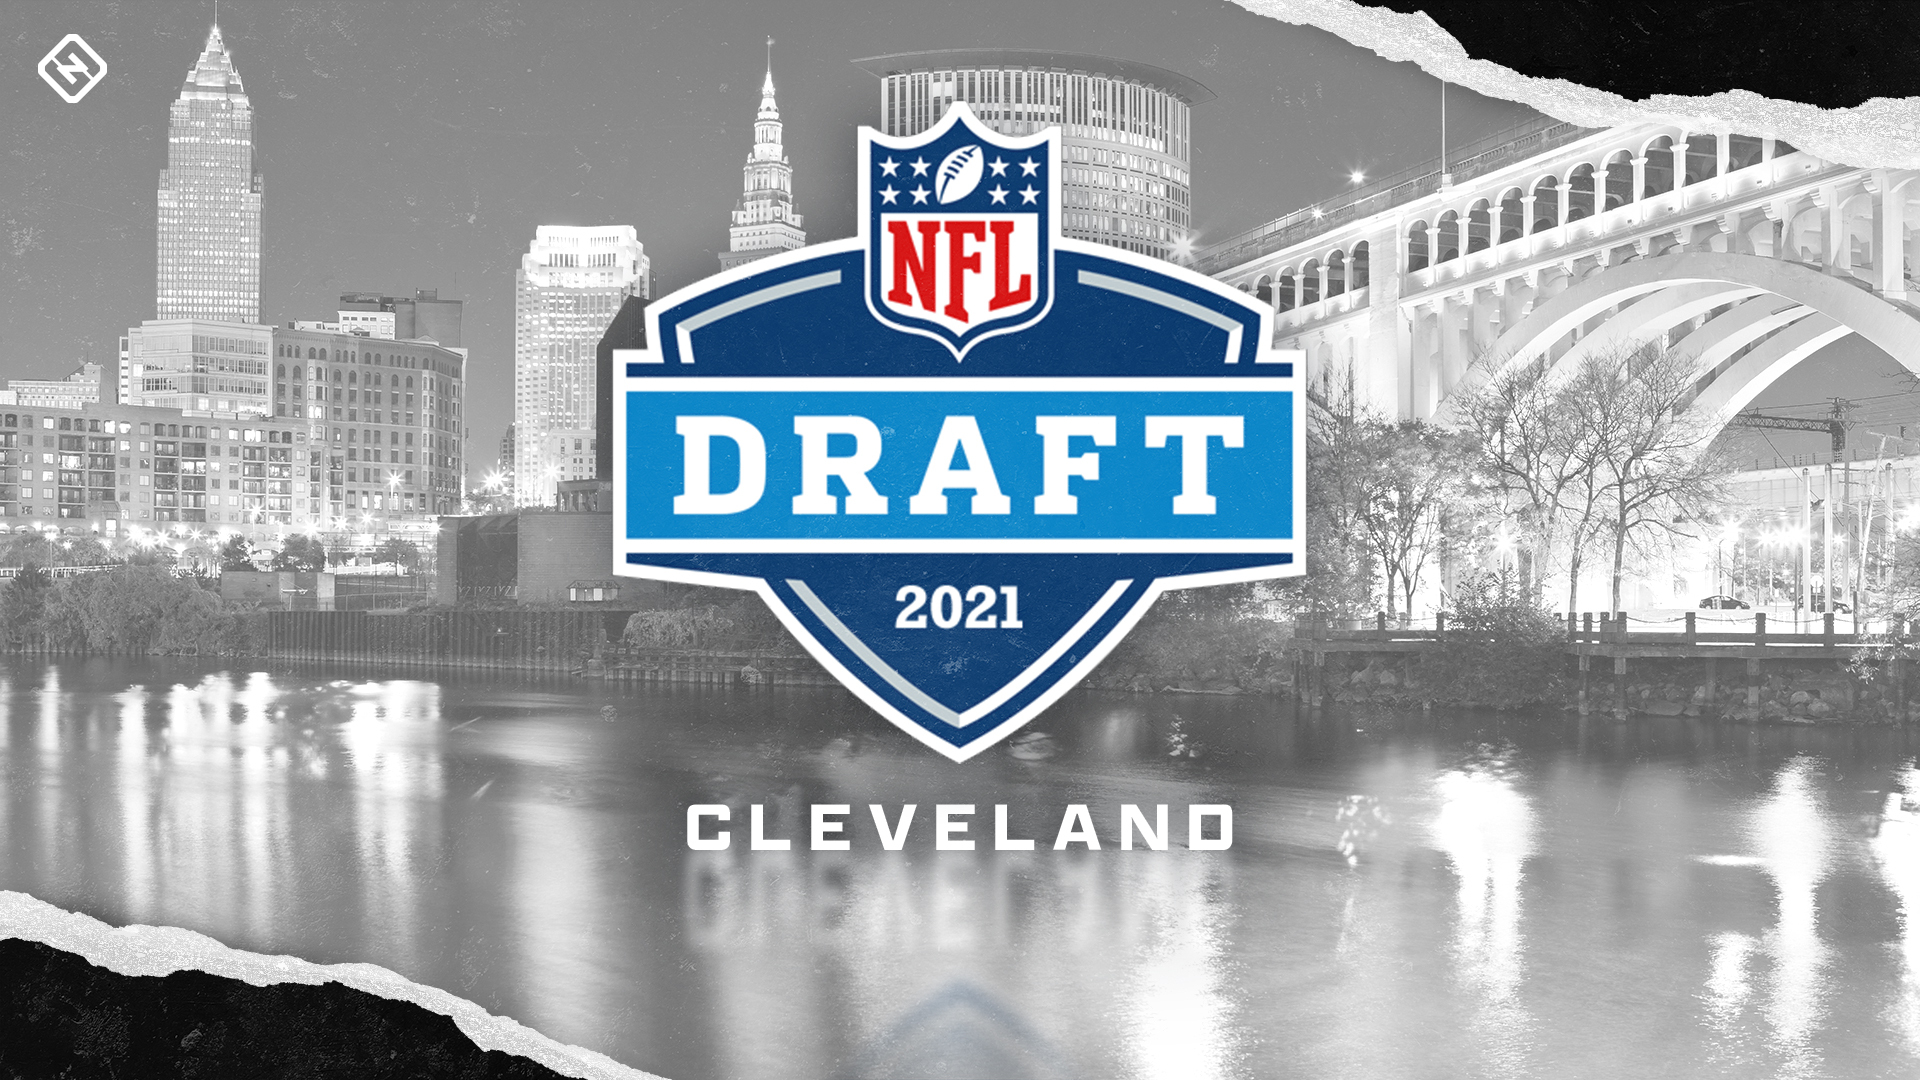 NFL undrafted free agents: Tracking the notable UDFA signings after 2021 NFL Draft